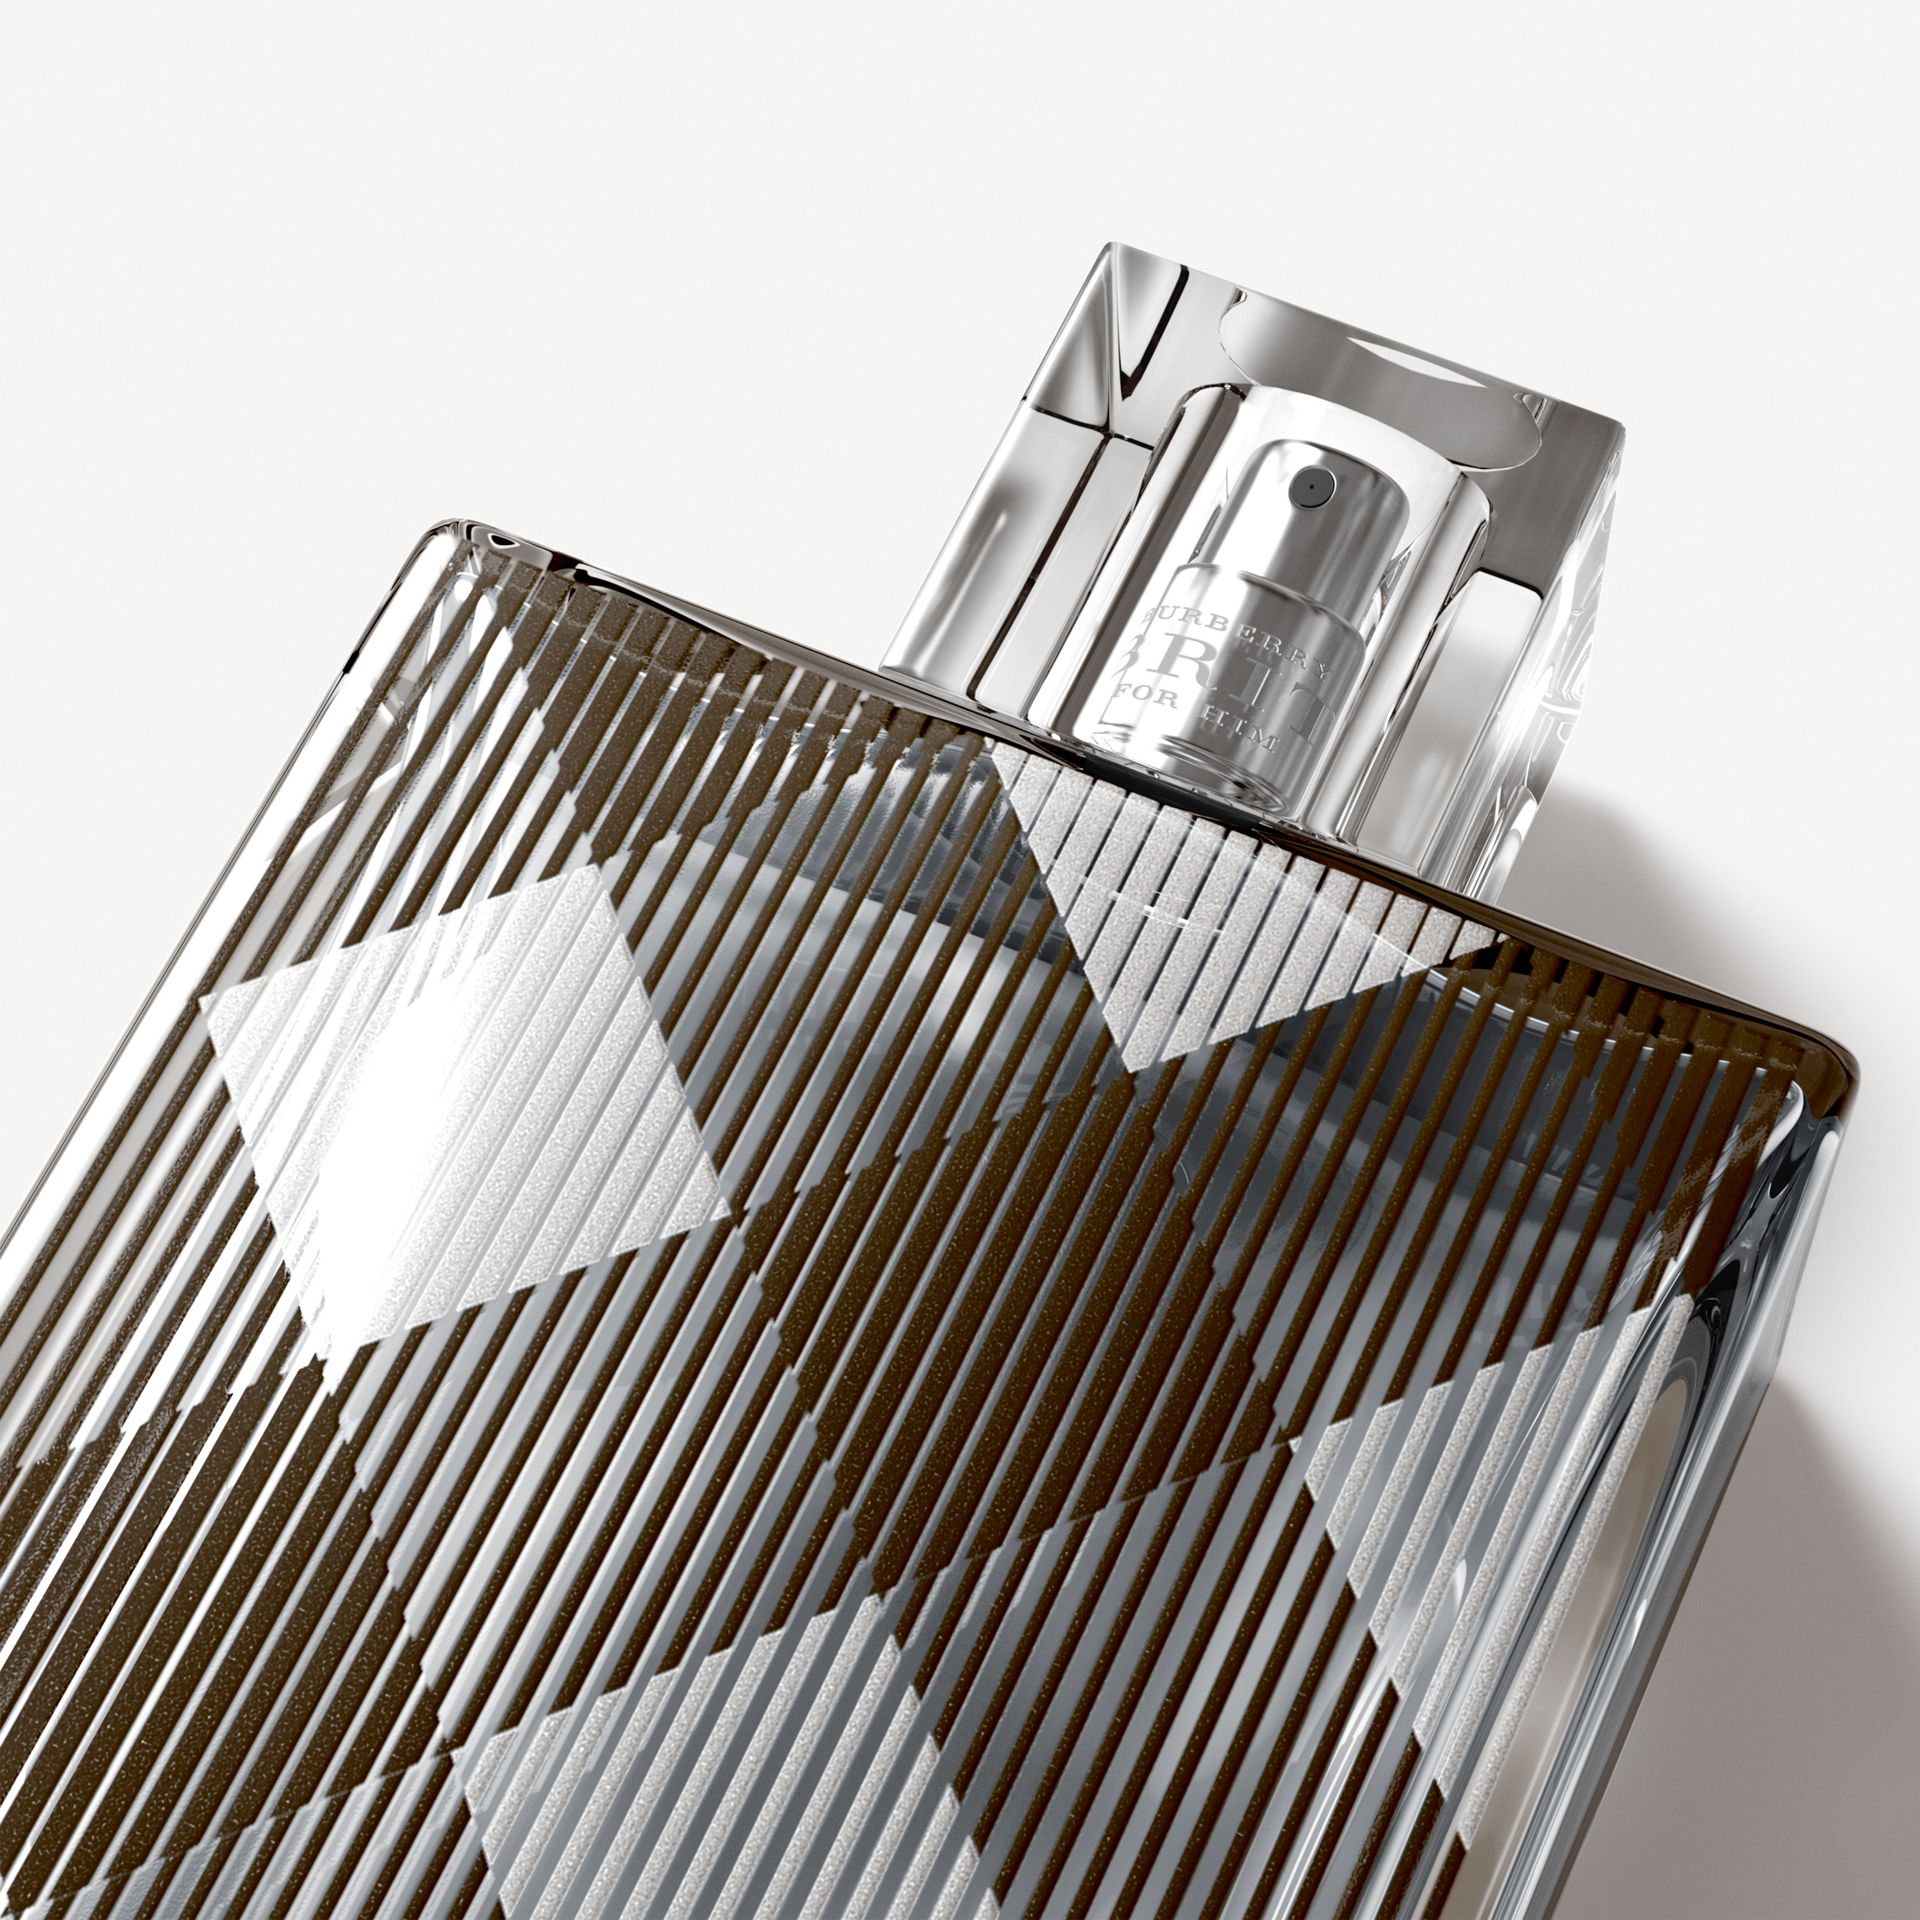 Burberry Brit For Him Eau de Toilette 200 ml - Galerie-Bild 2